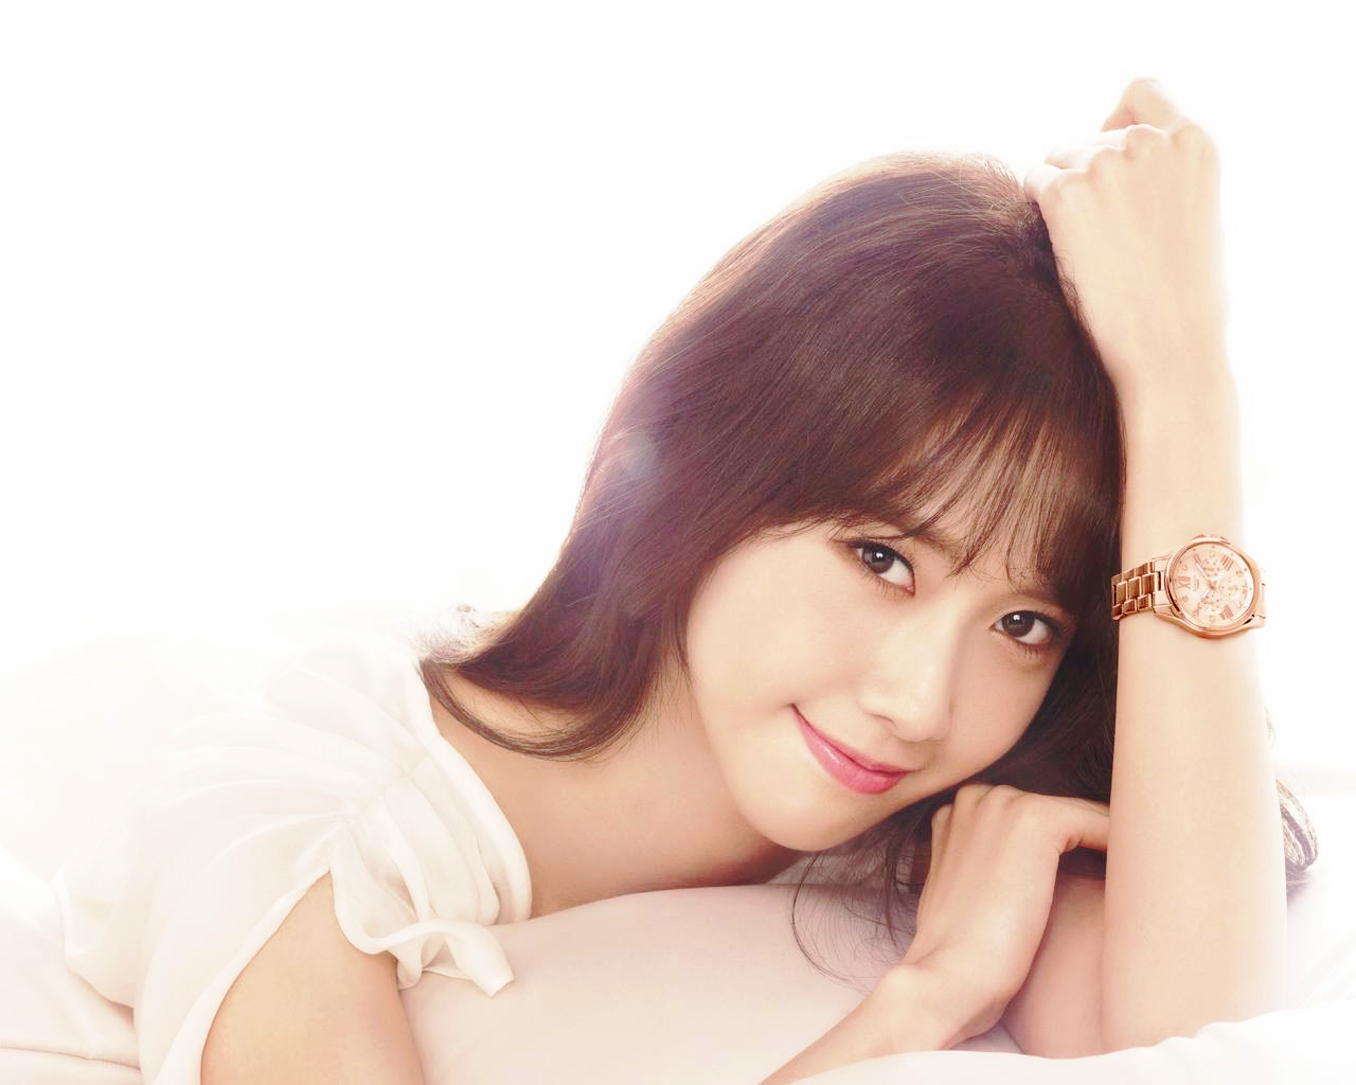 Girls Wallpapers 2015: Girls Generation/SNSD Images Yoona For Casio Sheen 2015 HD